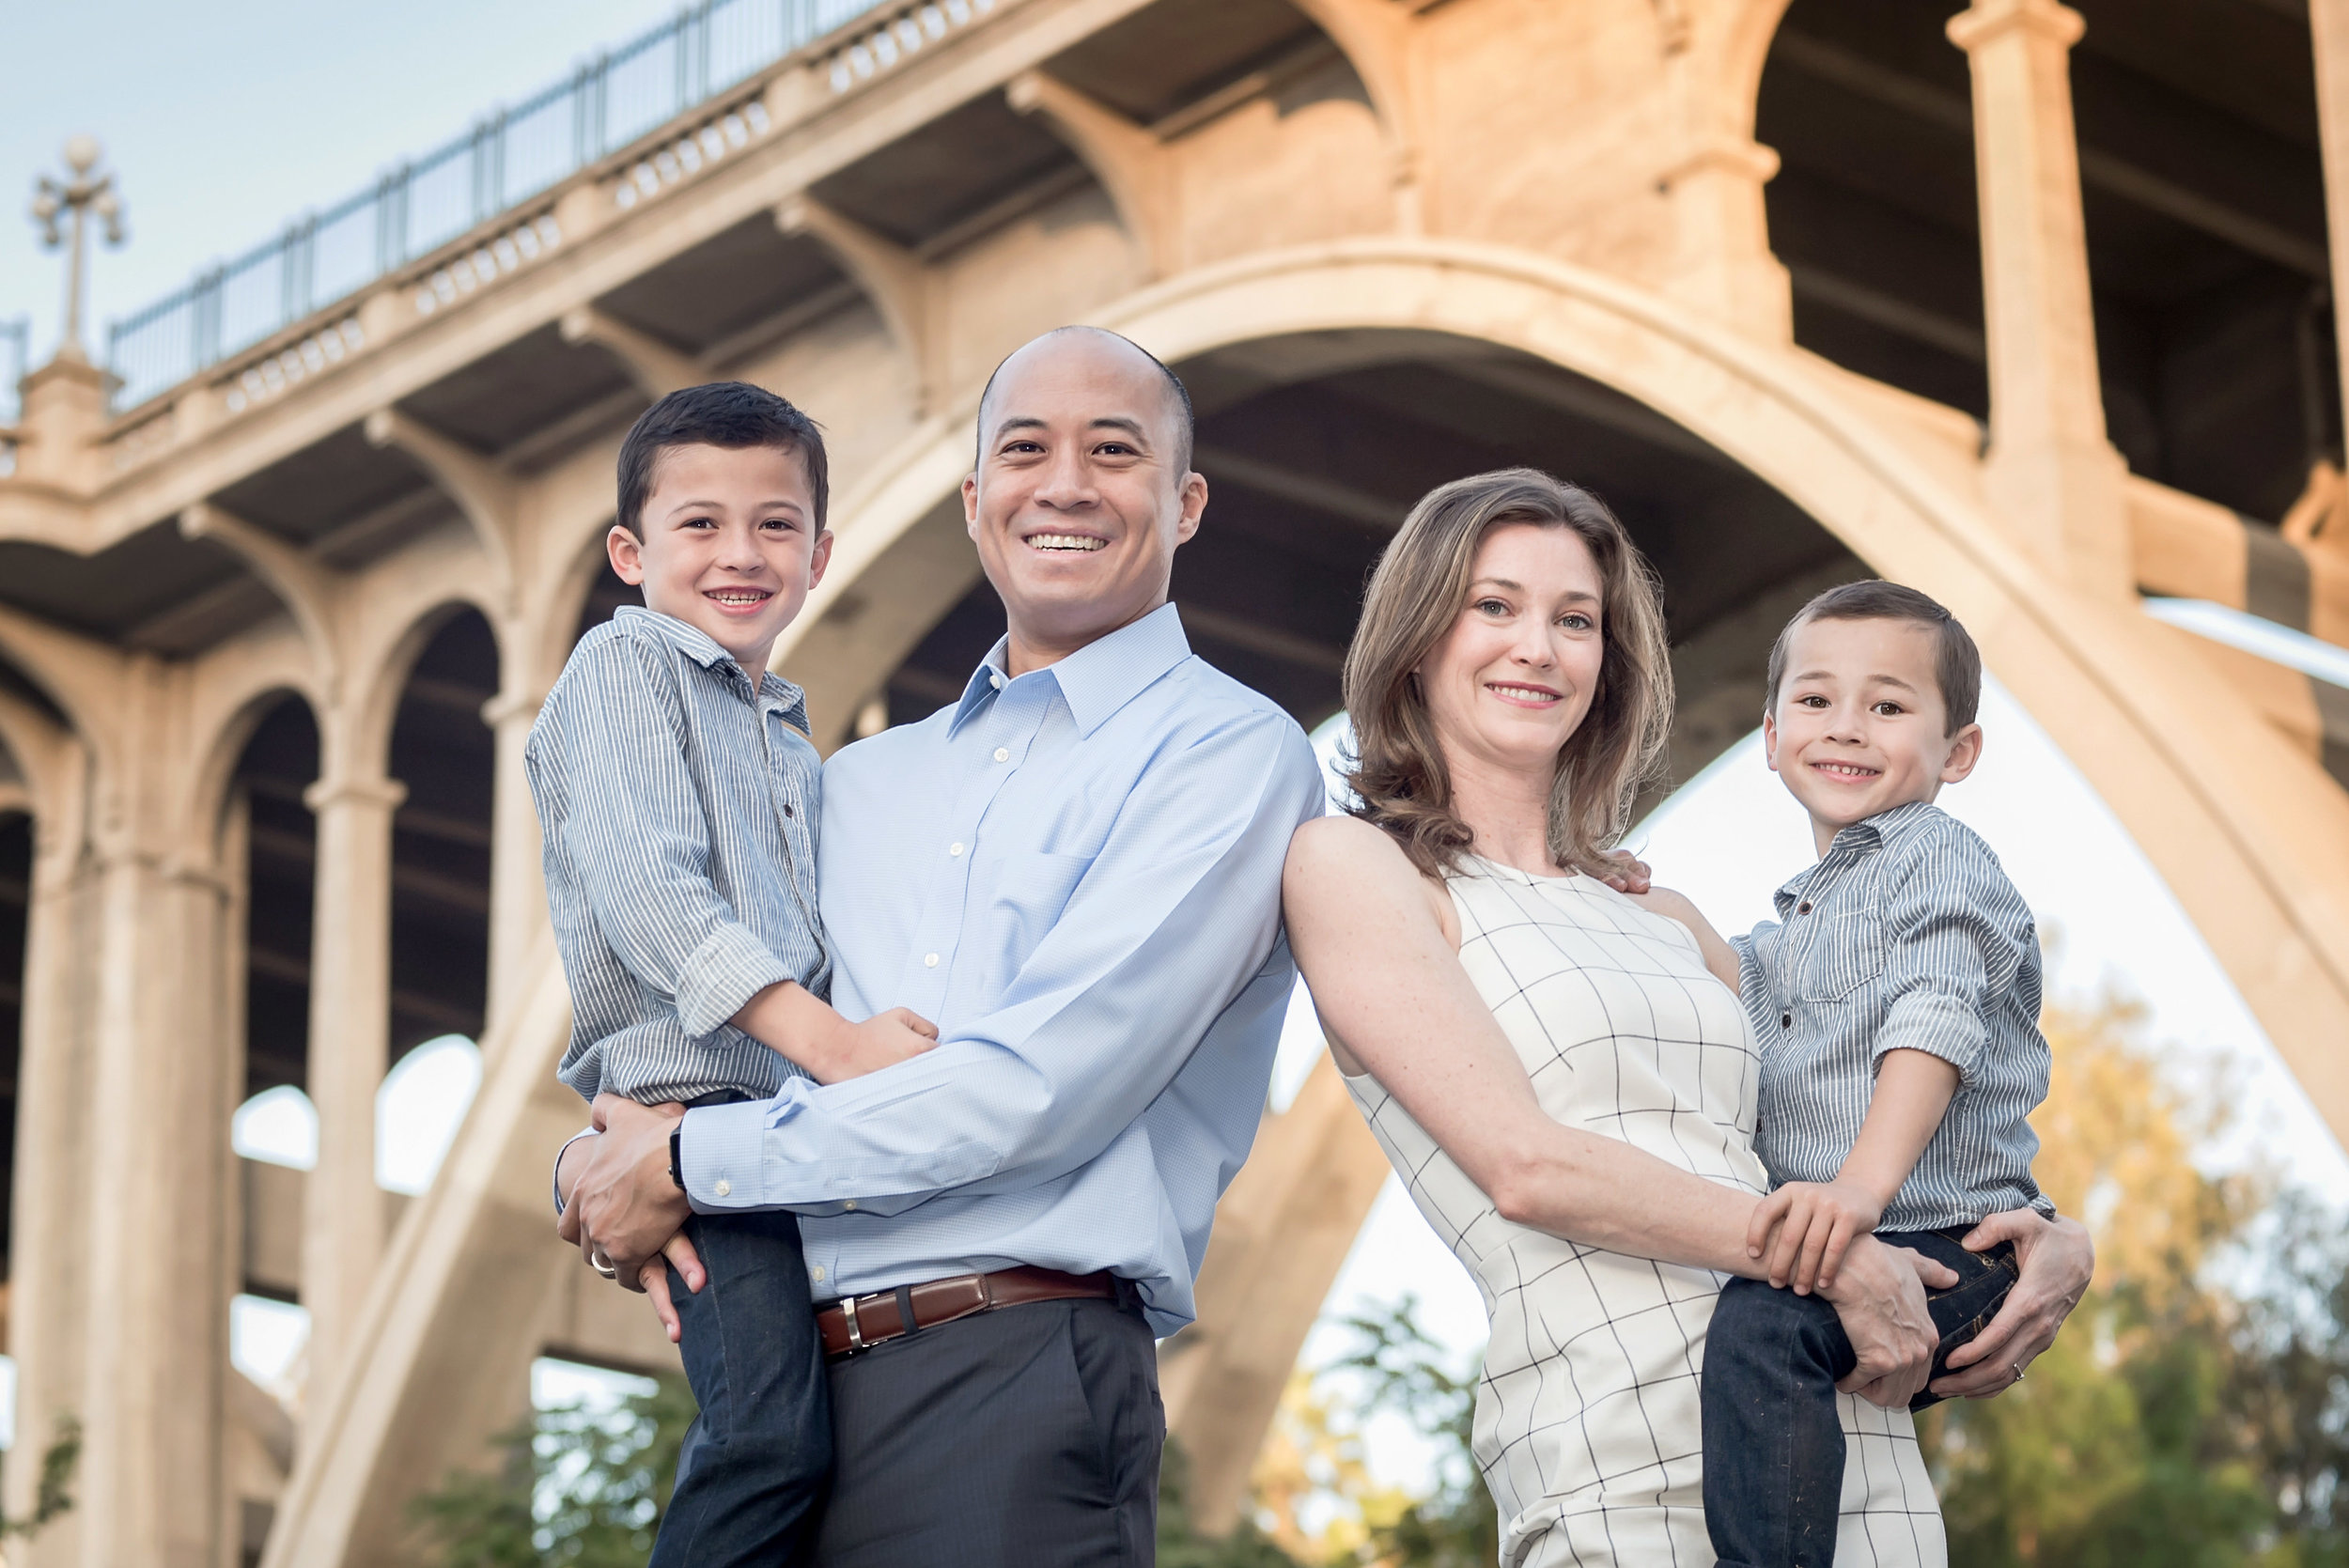 SILVER [$250] - IDEAL FOR FAMILIES, CHILDREN, & COUPLESUp to 1.5 Hour Session | 25-35 Full Resolution Edited Digital Images